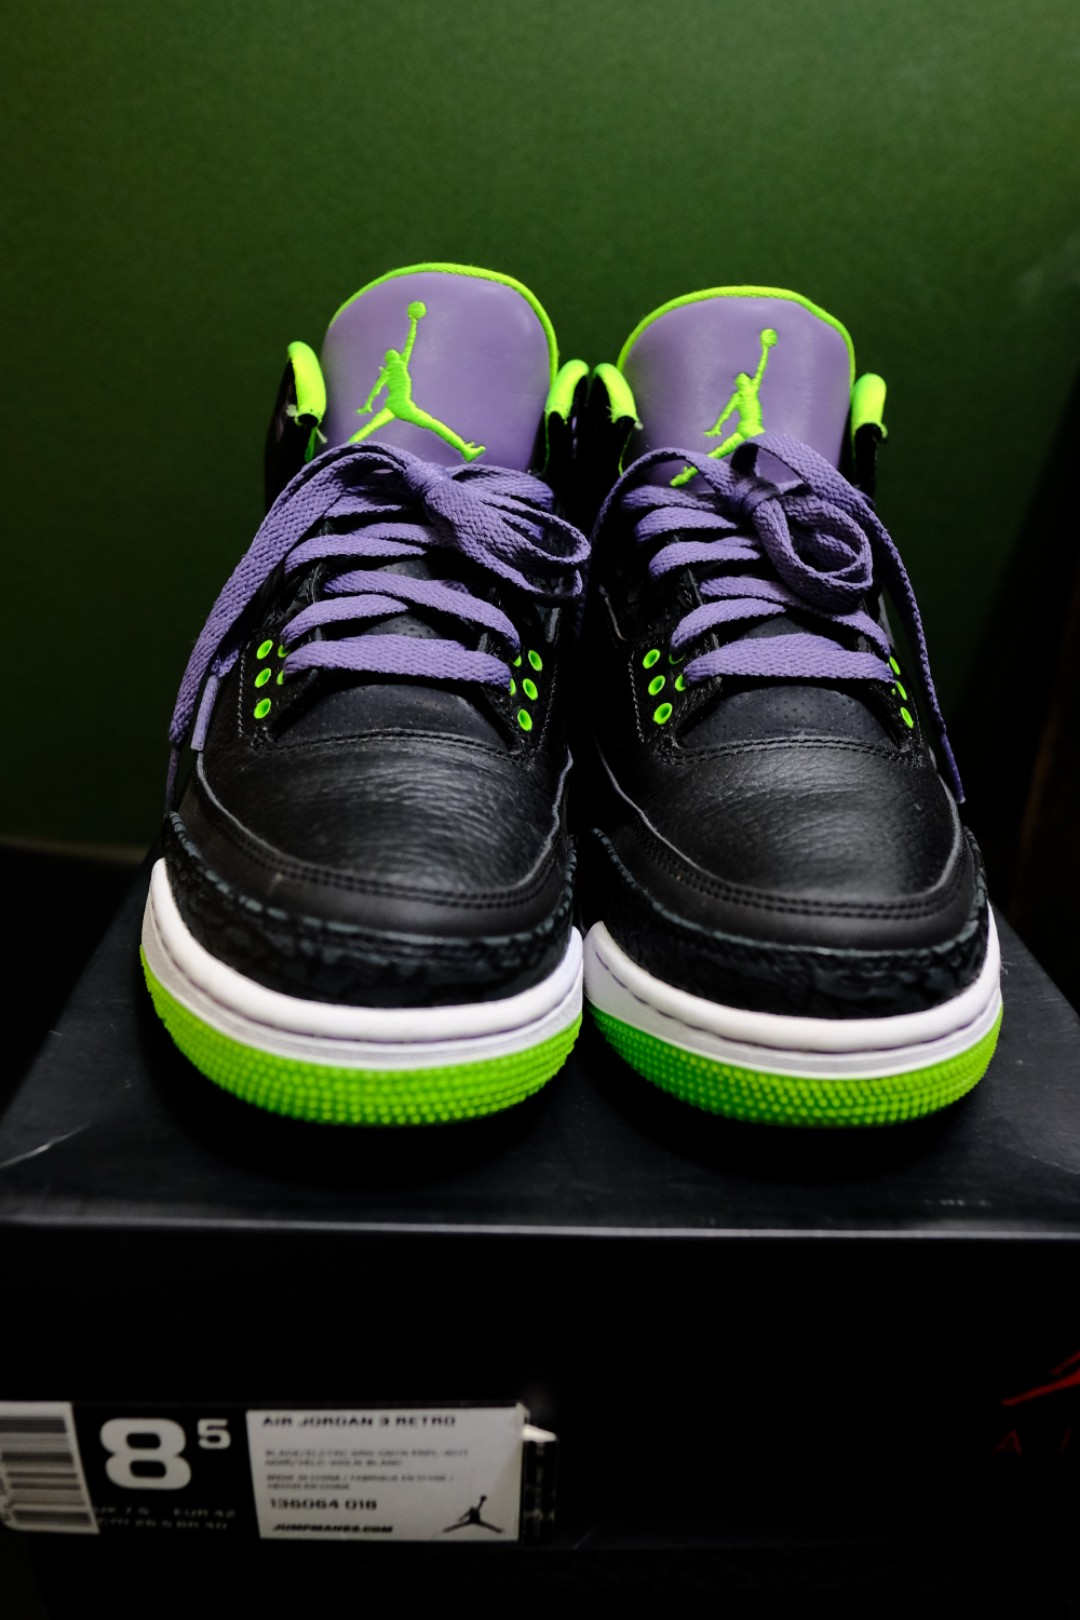 608f3792990b8a Air Jordan 3 Retro (joker)